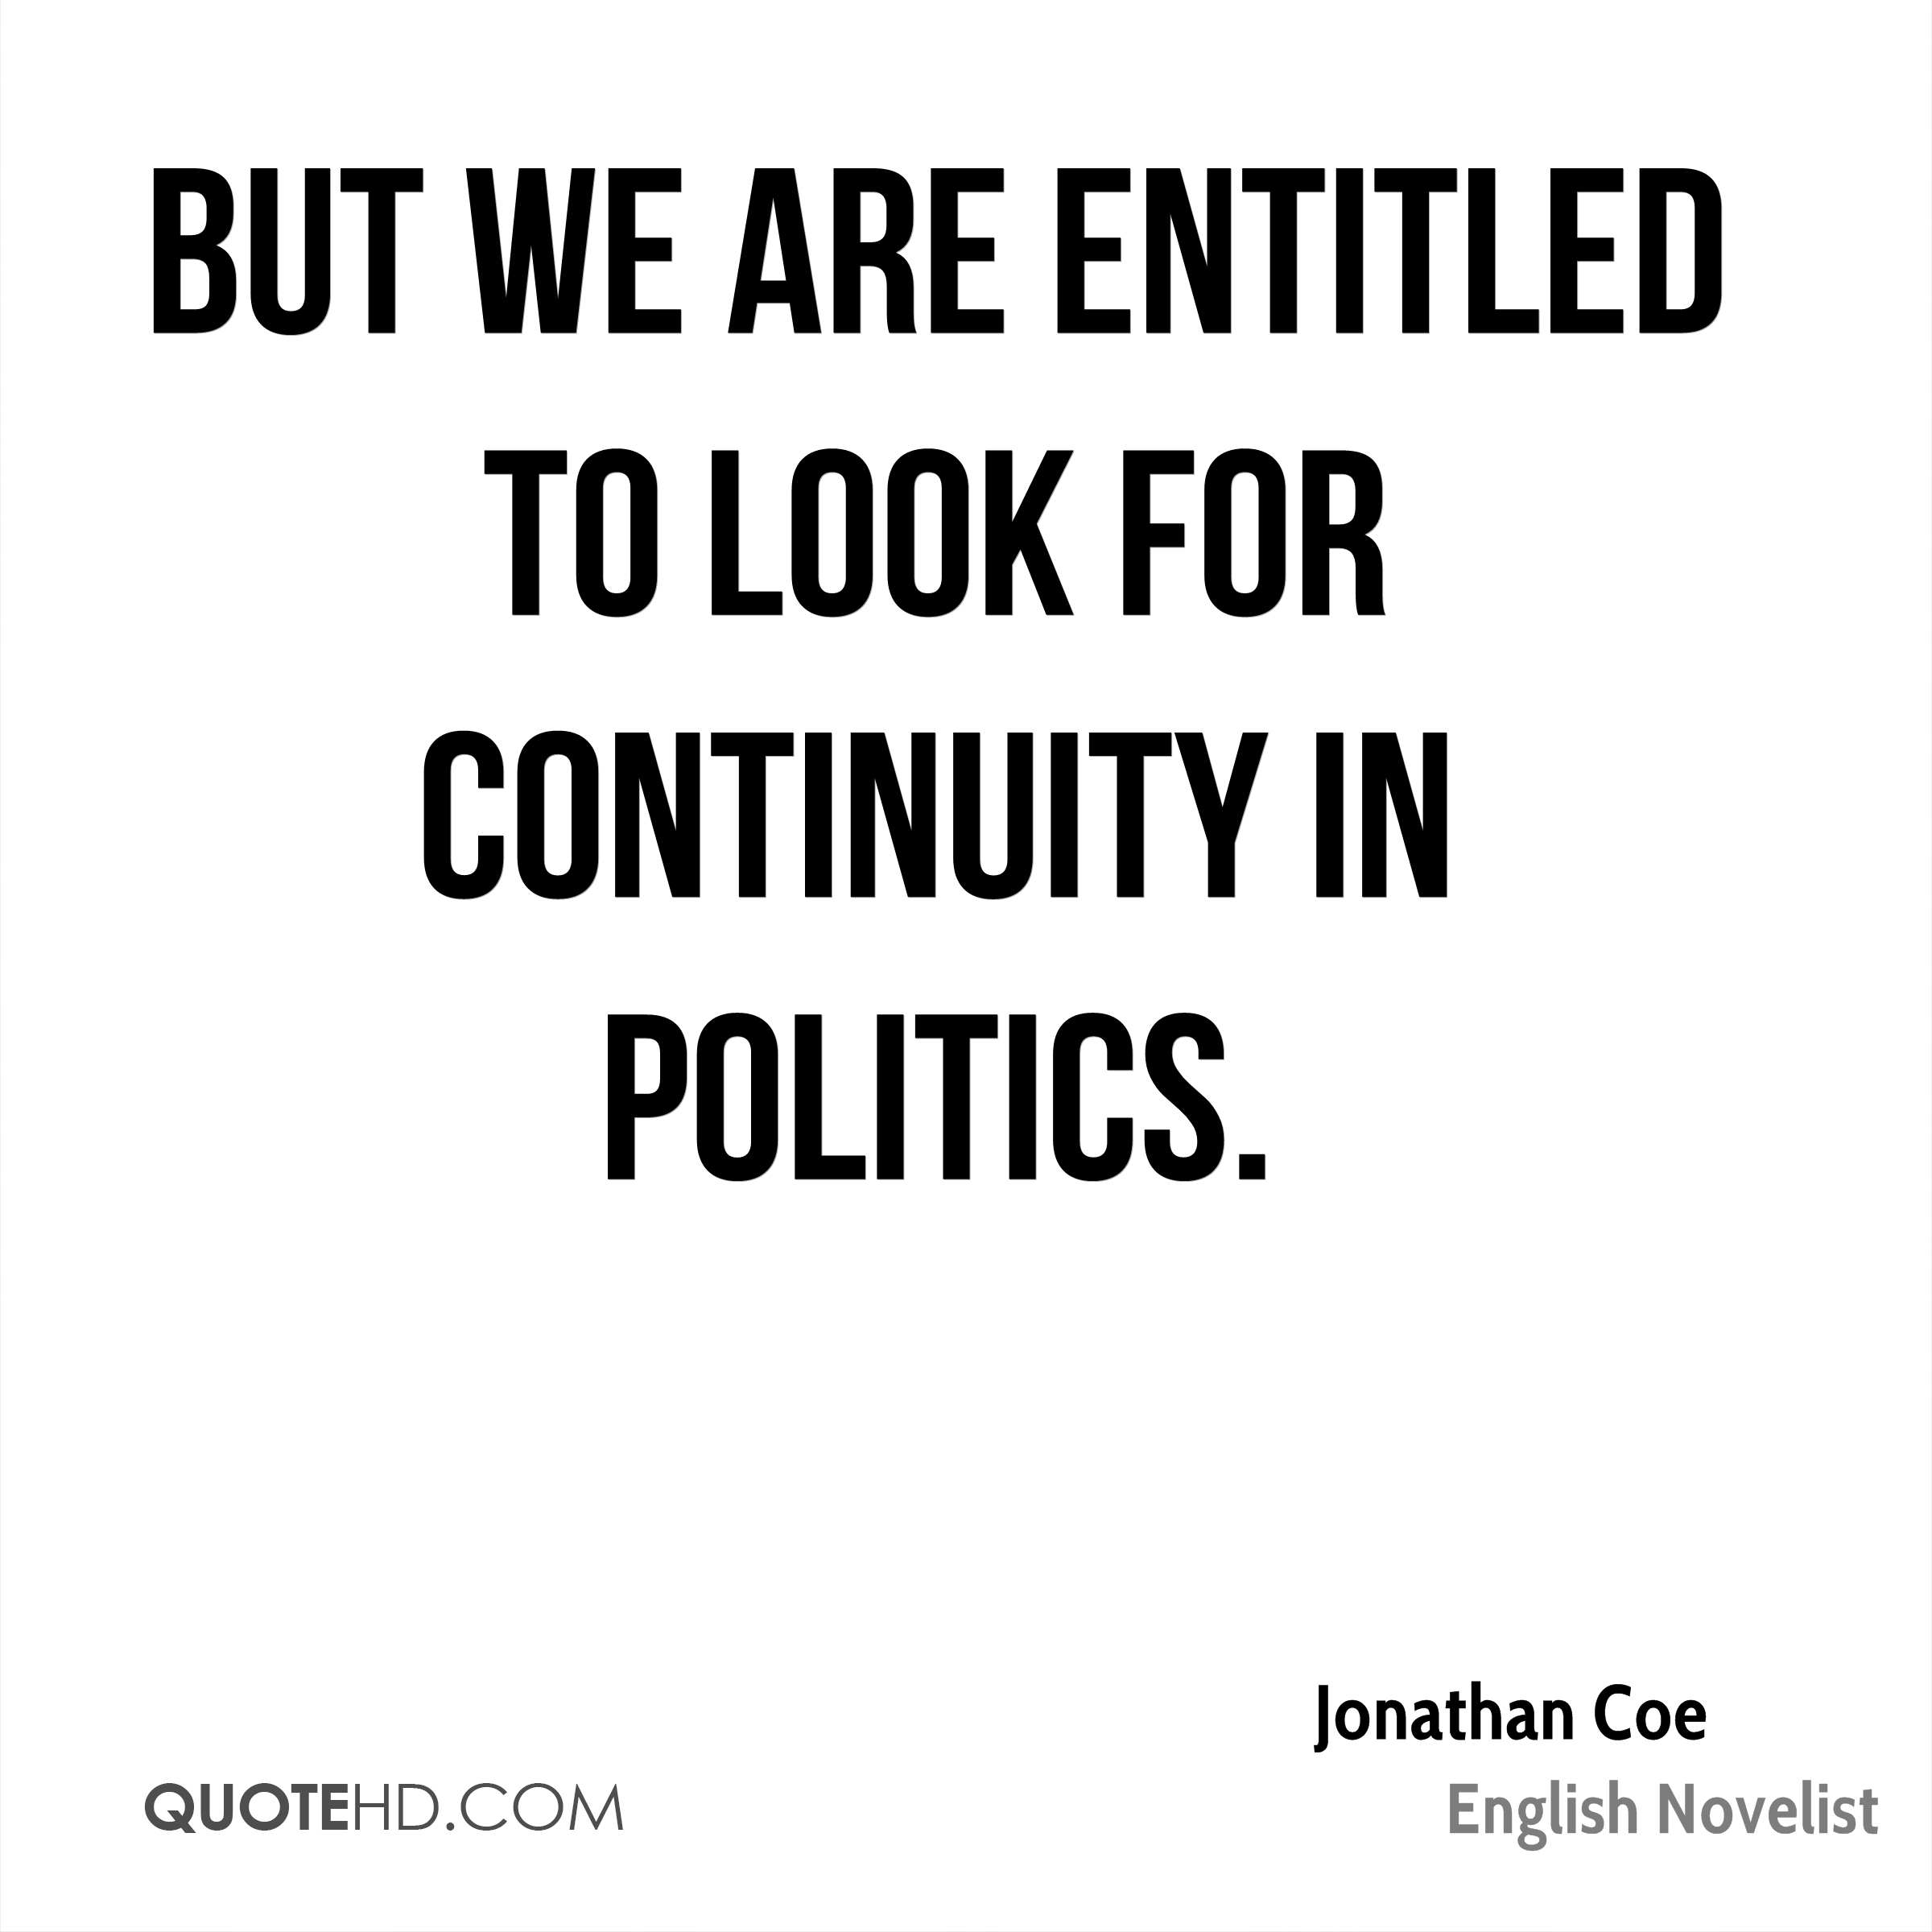 But we are entitled to look for continuity in politics.